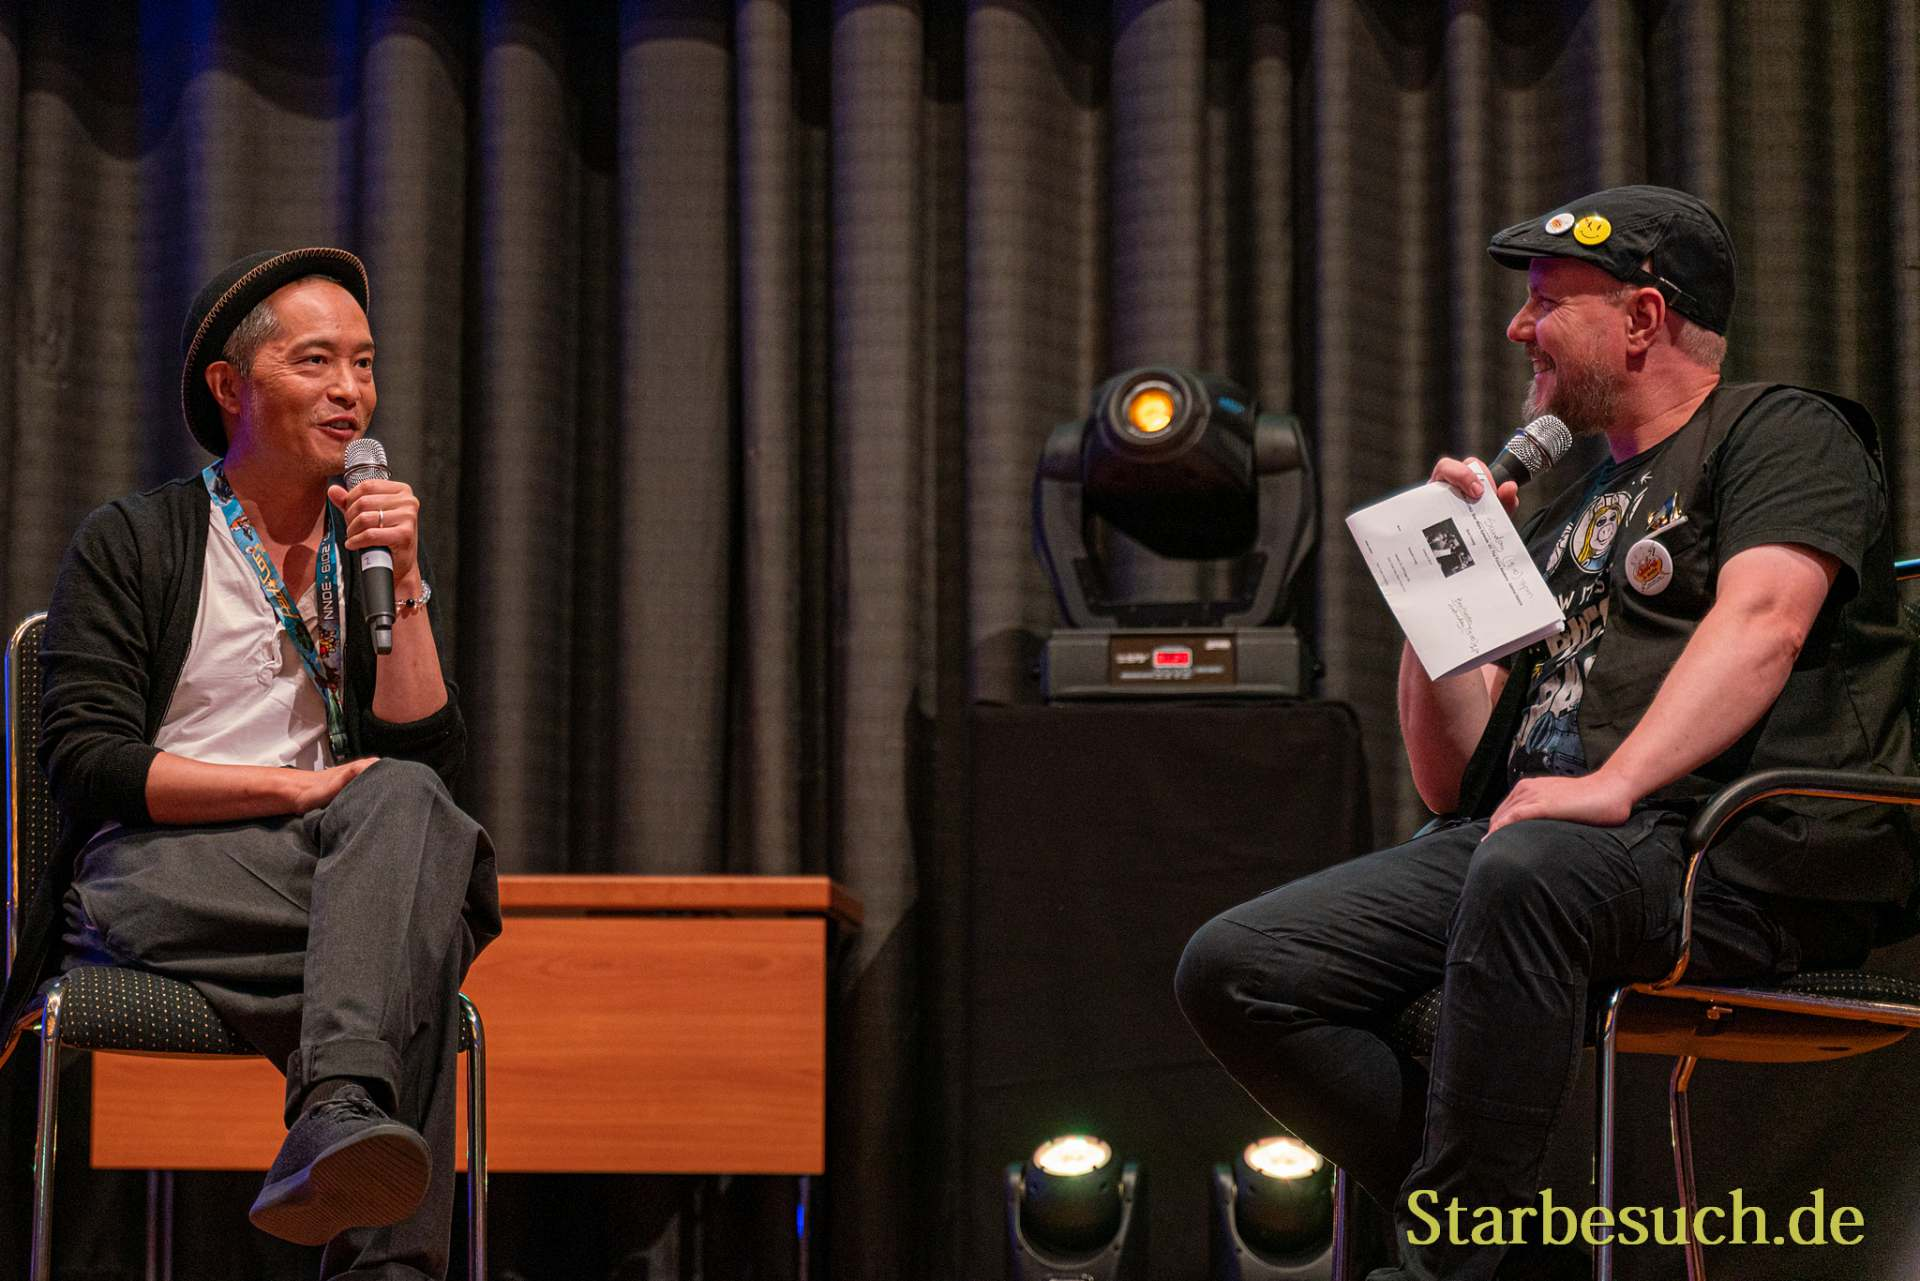 Bonn, Germany - June 8 2019: Ken Leung and Steffen Volkmer at FedCon 28, a four day sci-fi convention. FedCon 28 took place Jun 7-10 2019.